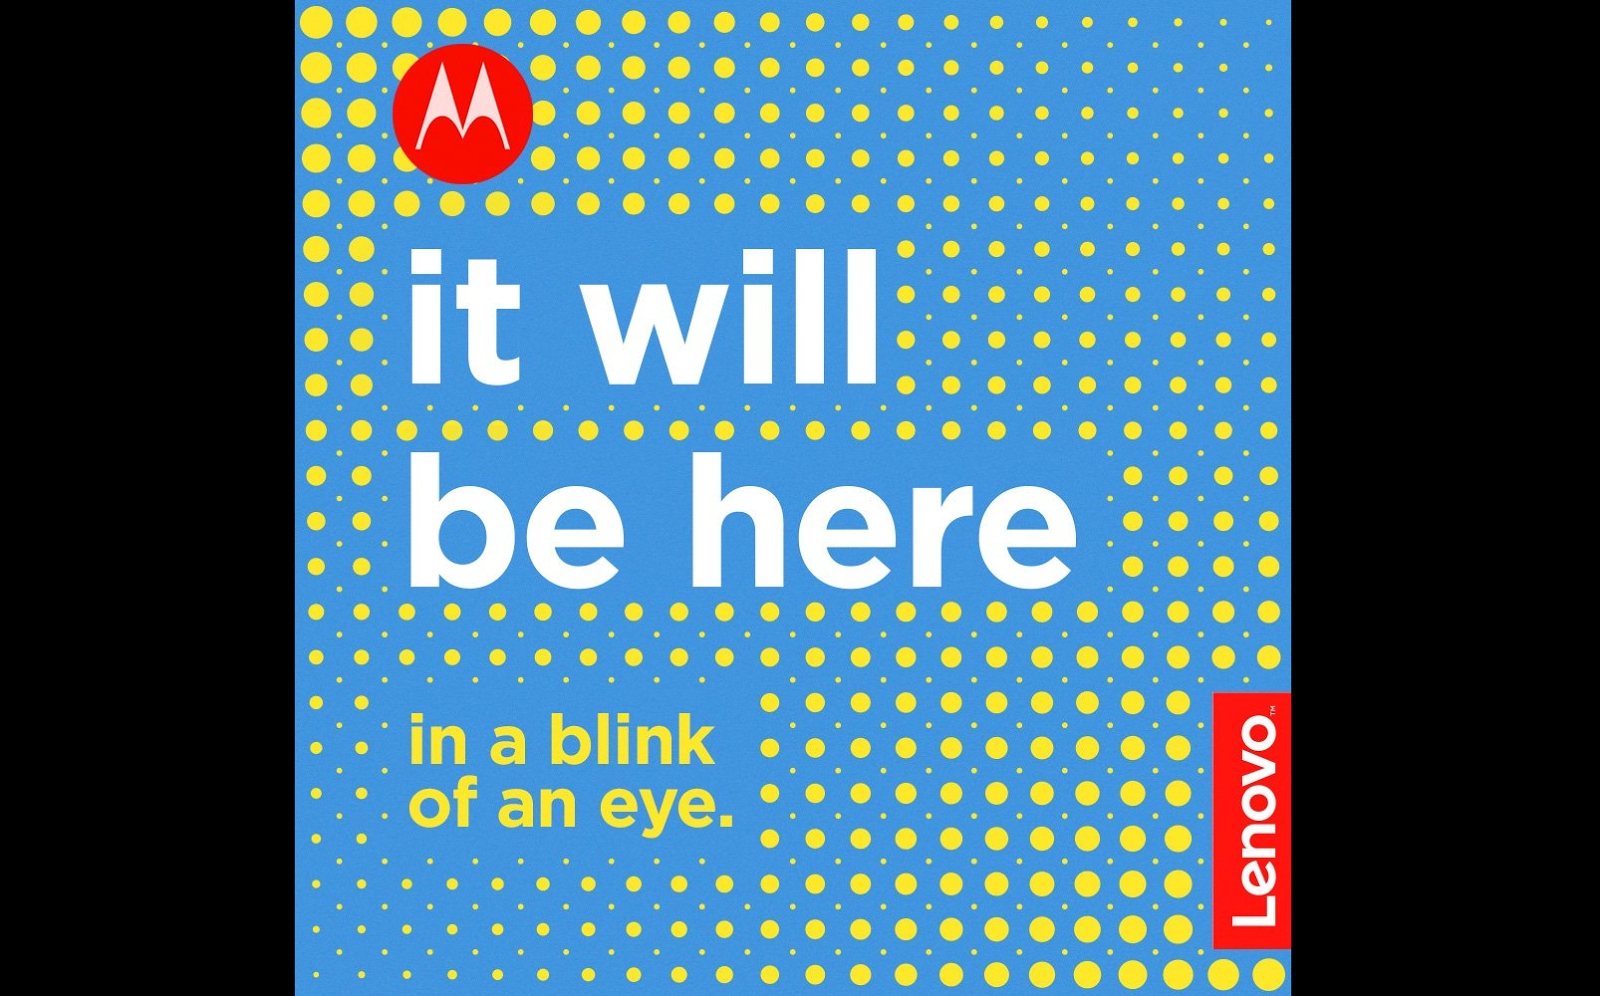 Here You Can See Motorola's Live-Event at 15:00